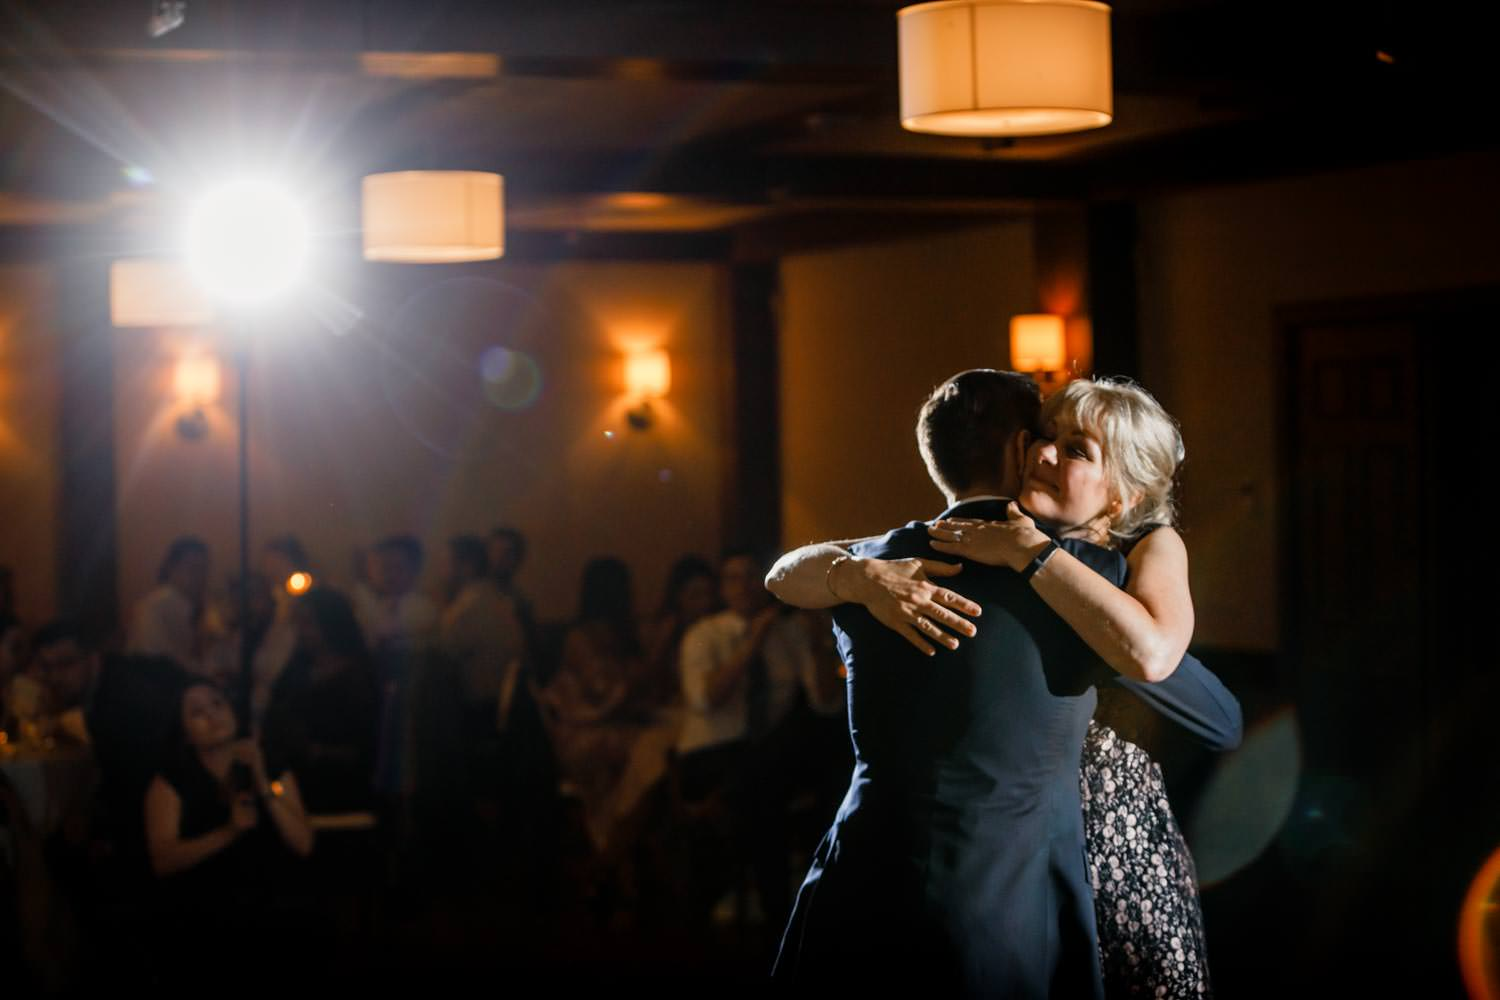 mother hugs groom after formal wedding dance